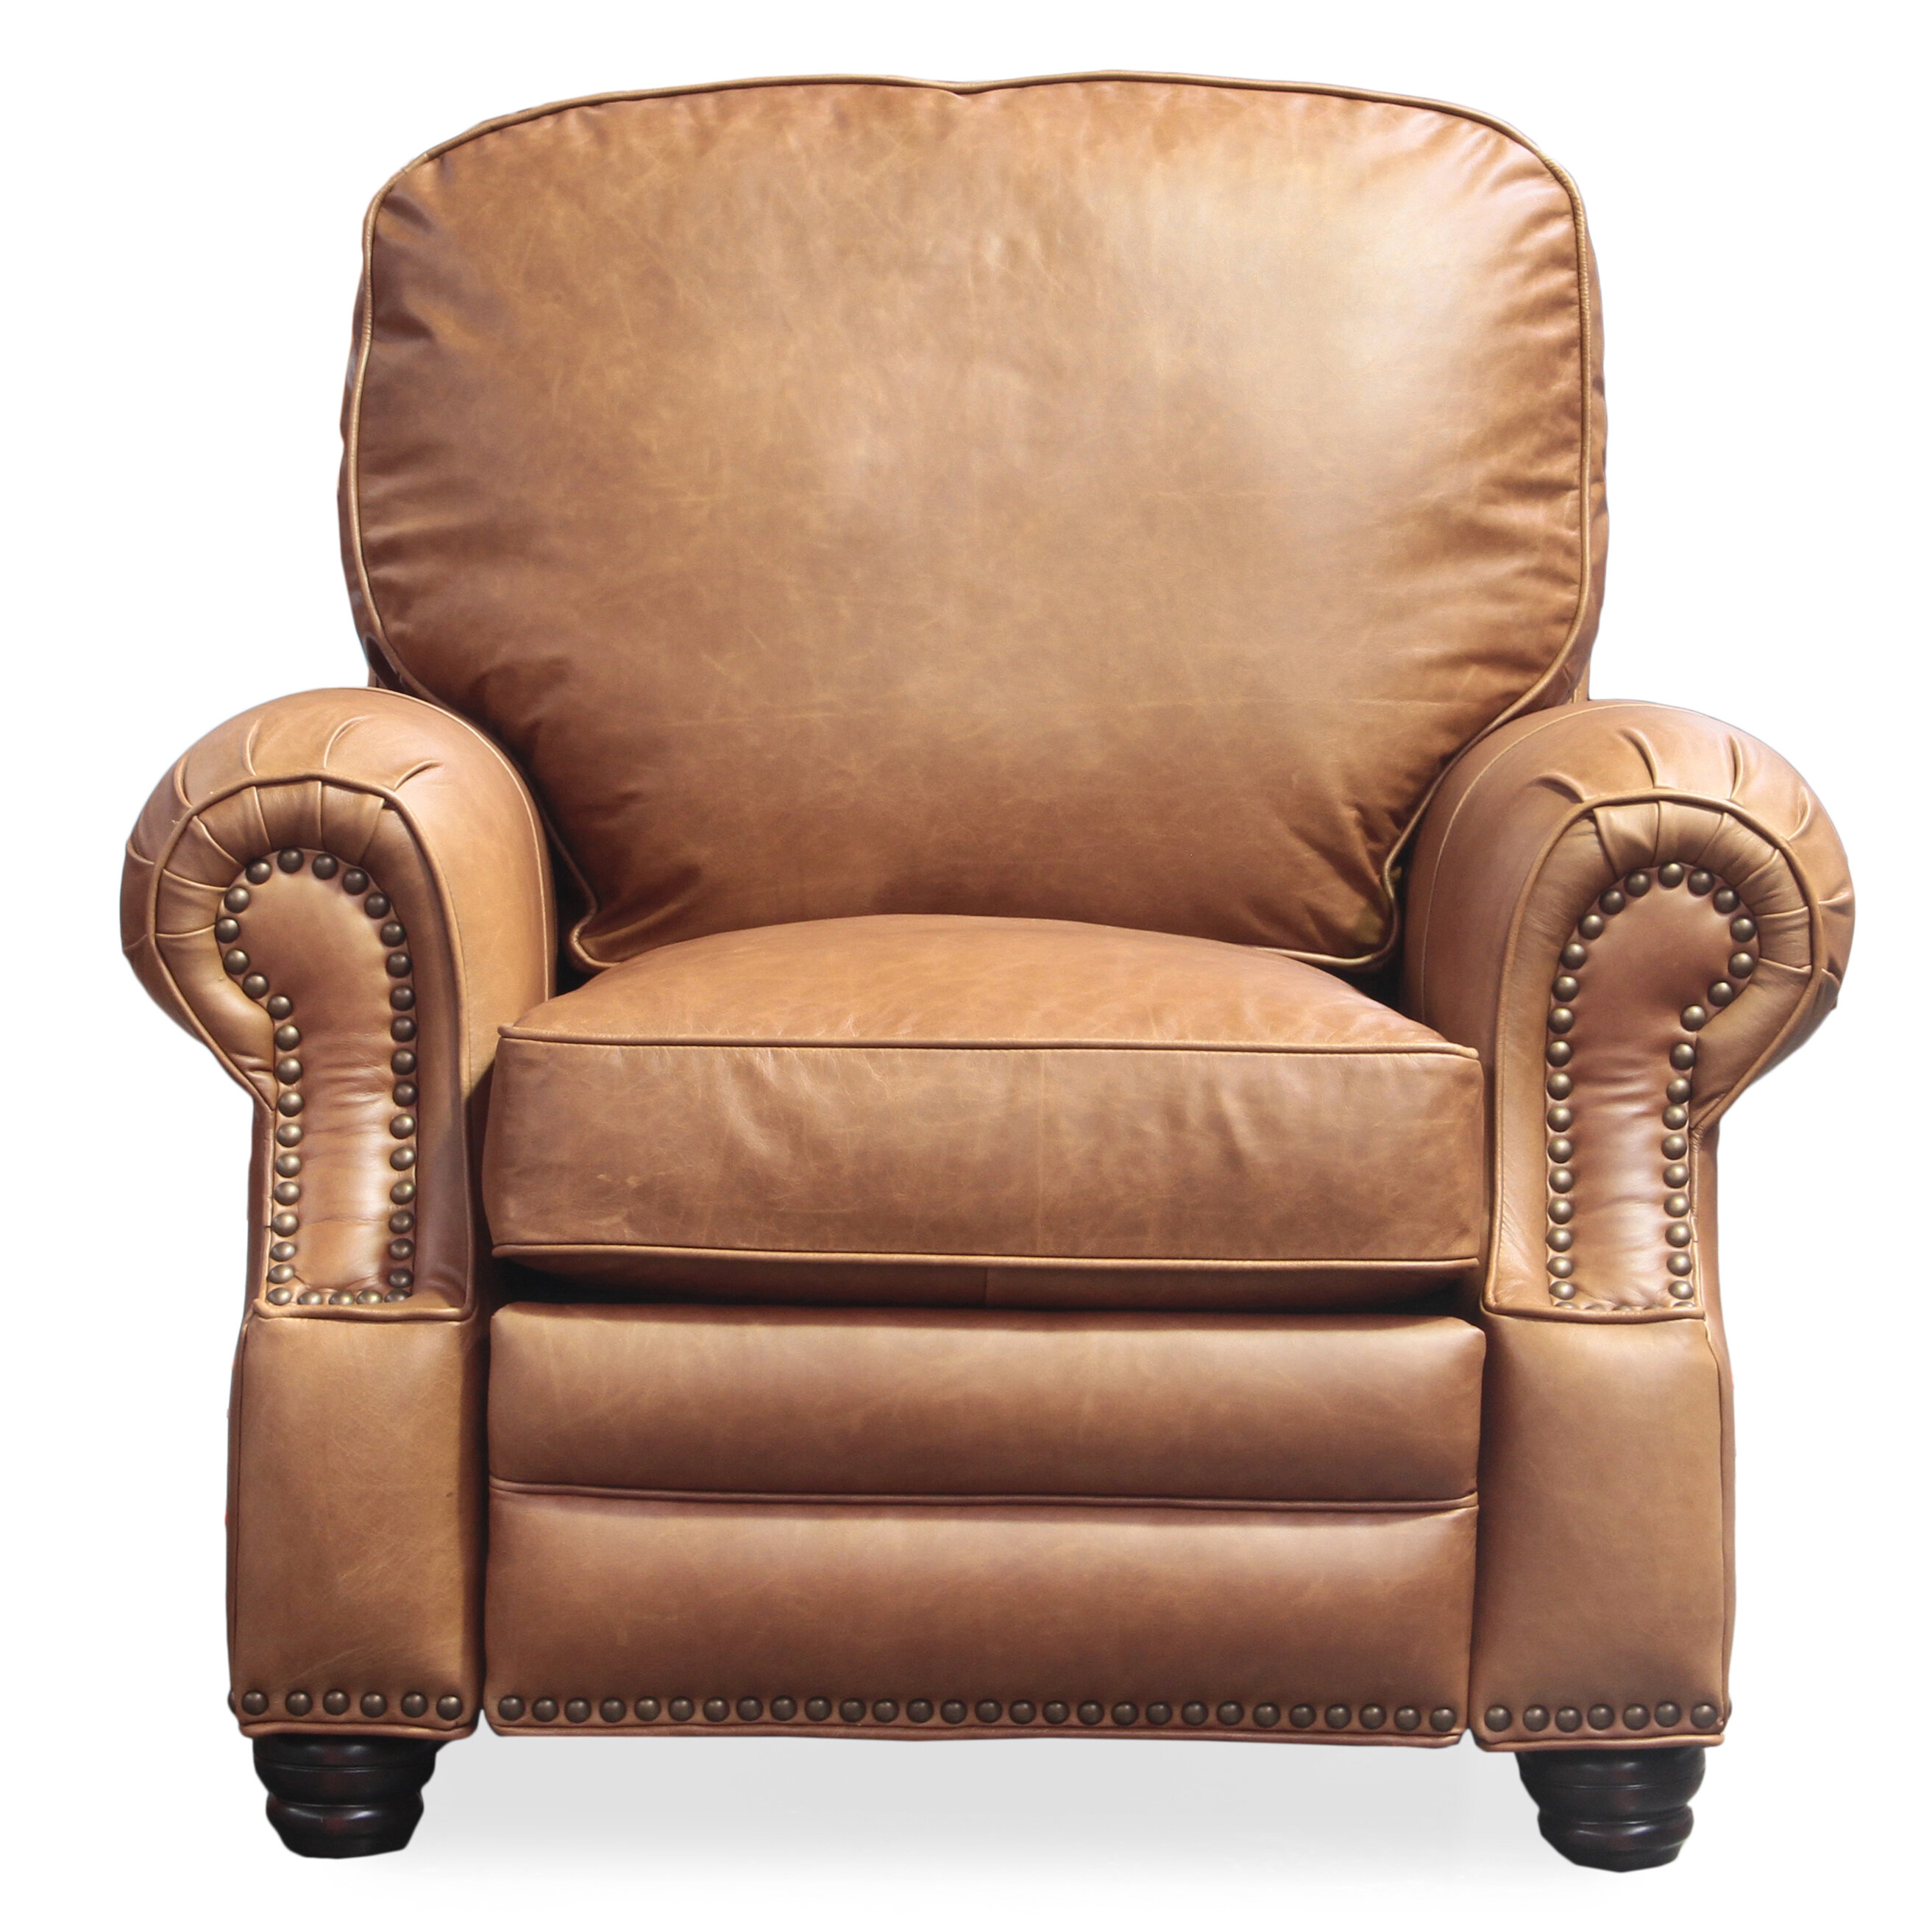 leather recliner chestnut copper product home shipping grove garden hoffman today free overstock bonded